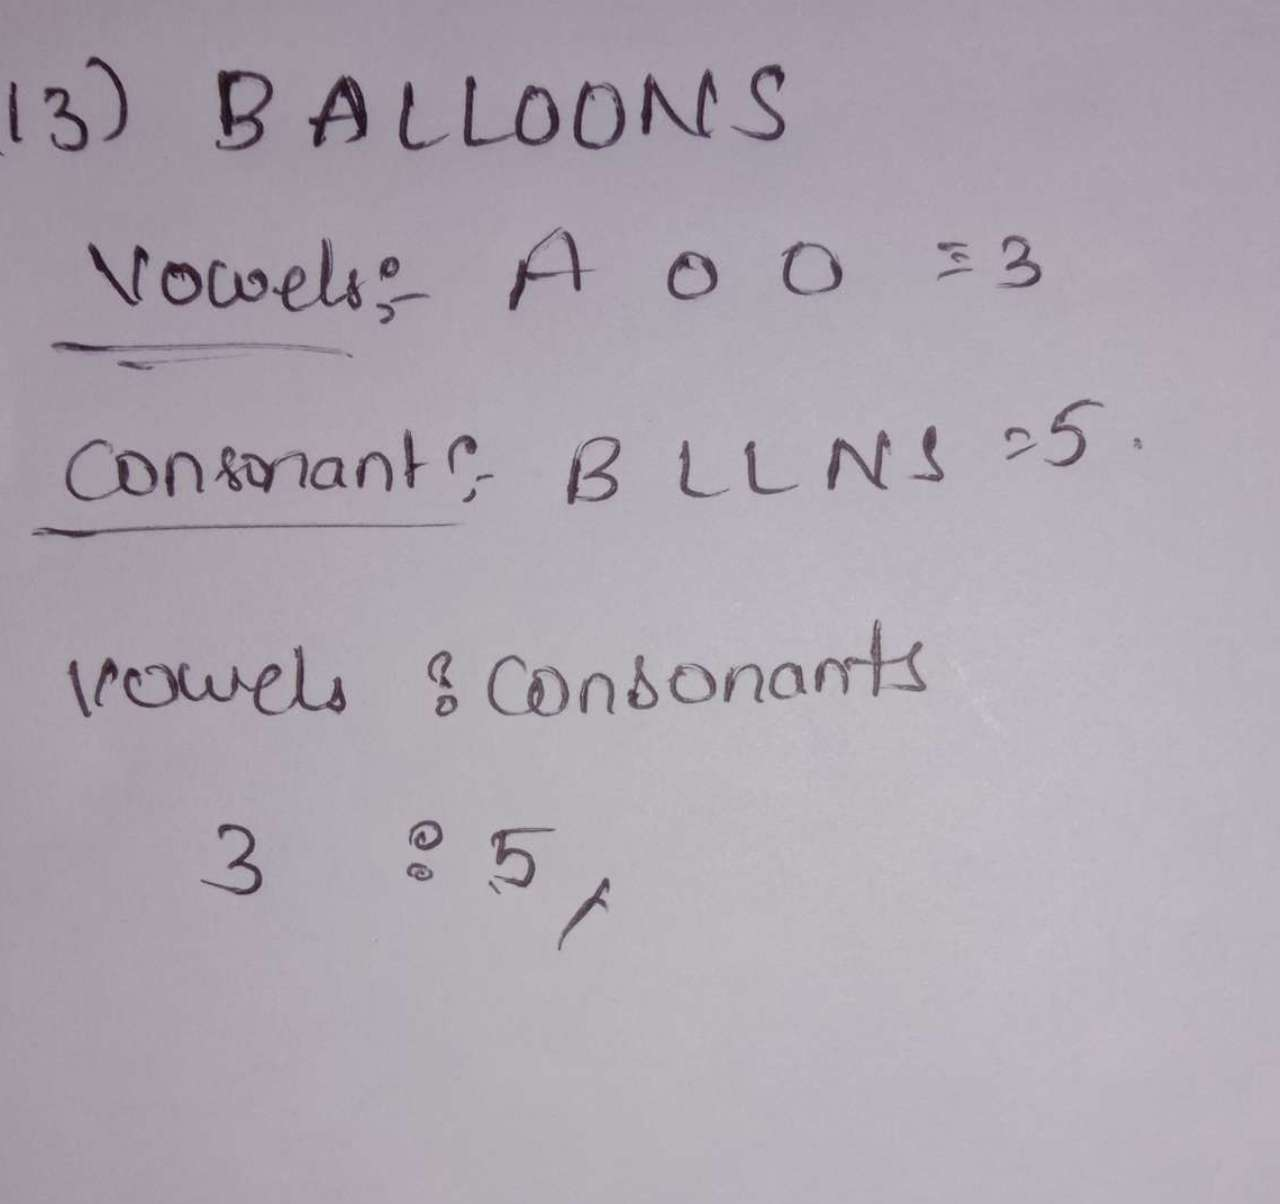 In the word 'BALLOONS, find the ratio between vowel letters and consonant letters.